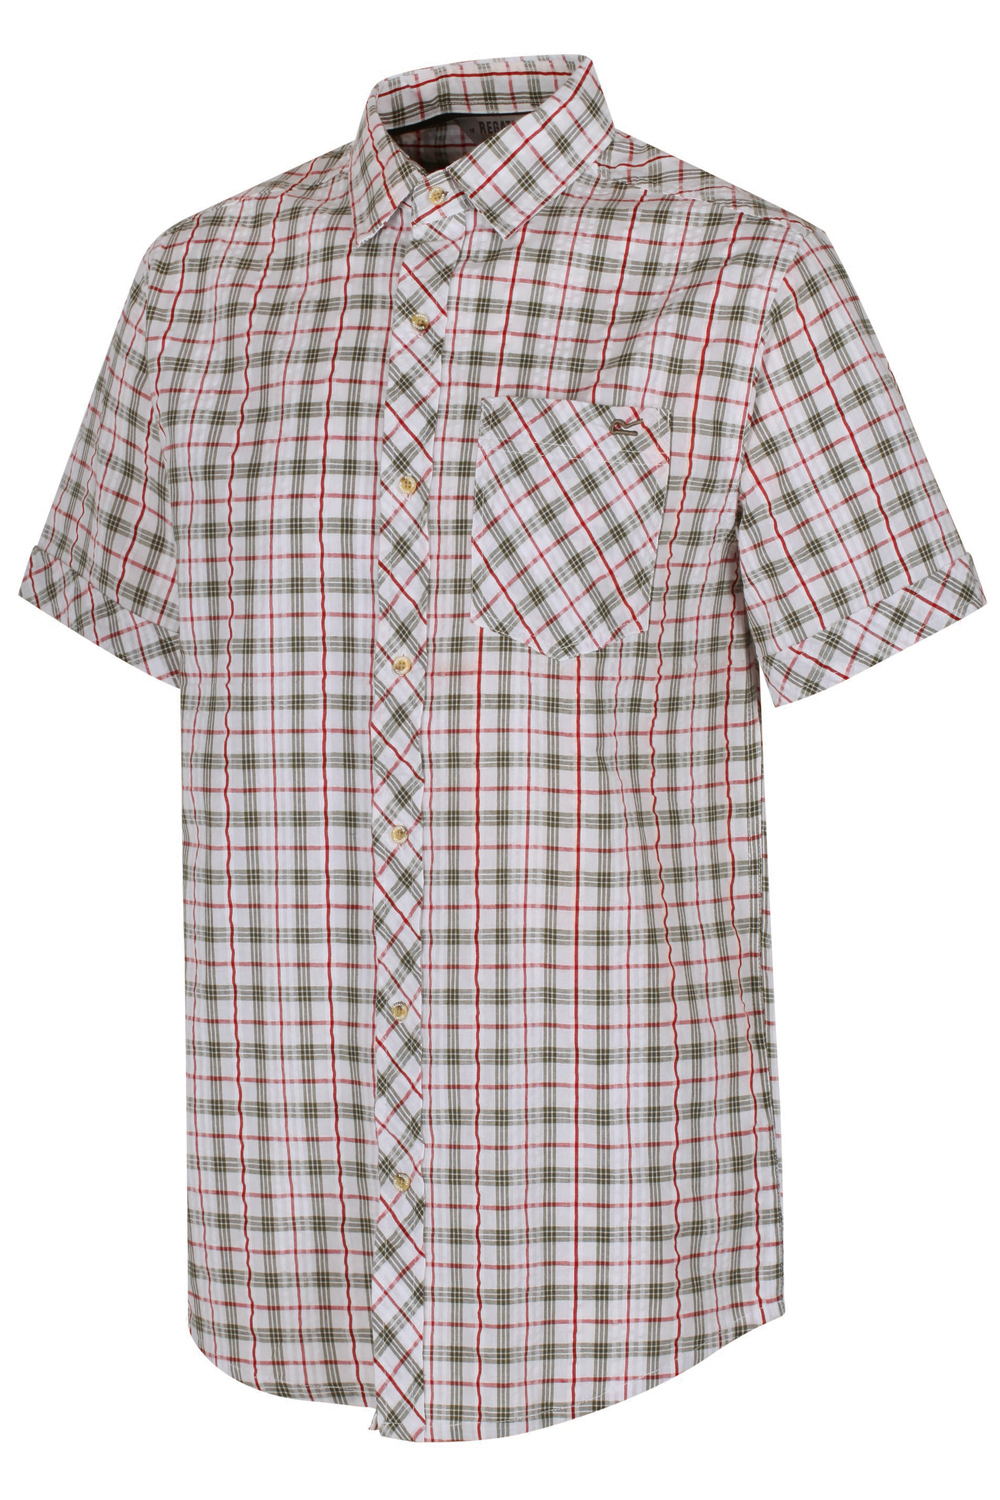 Regatta-Mens-Deakin-II-Coolweave-Cotton-Short-Sleeved-Summer-Check-Shirt-RRP-50 thumbnail 12